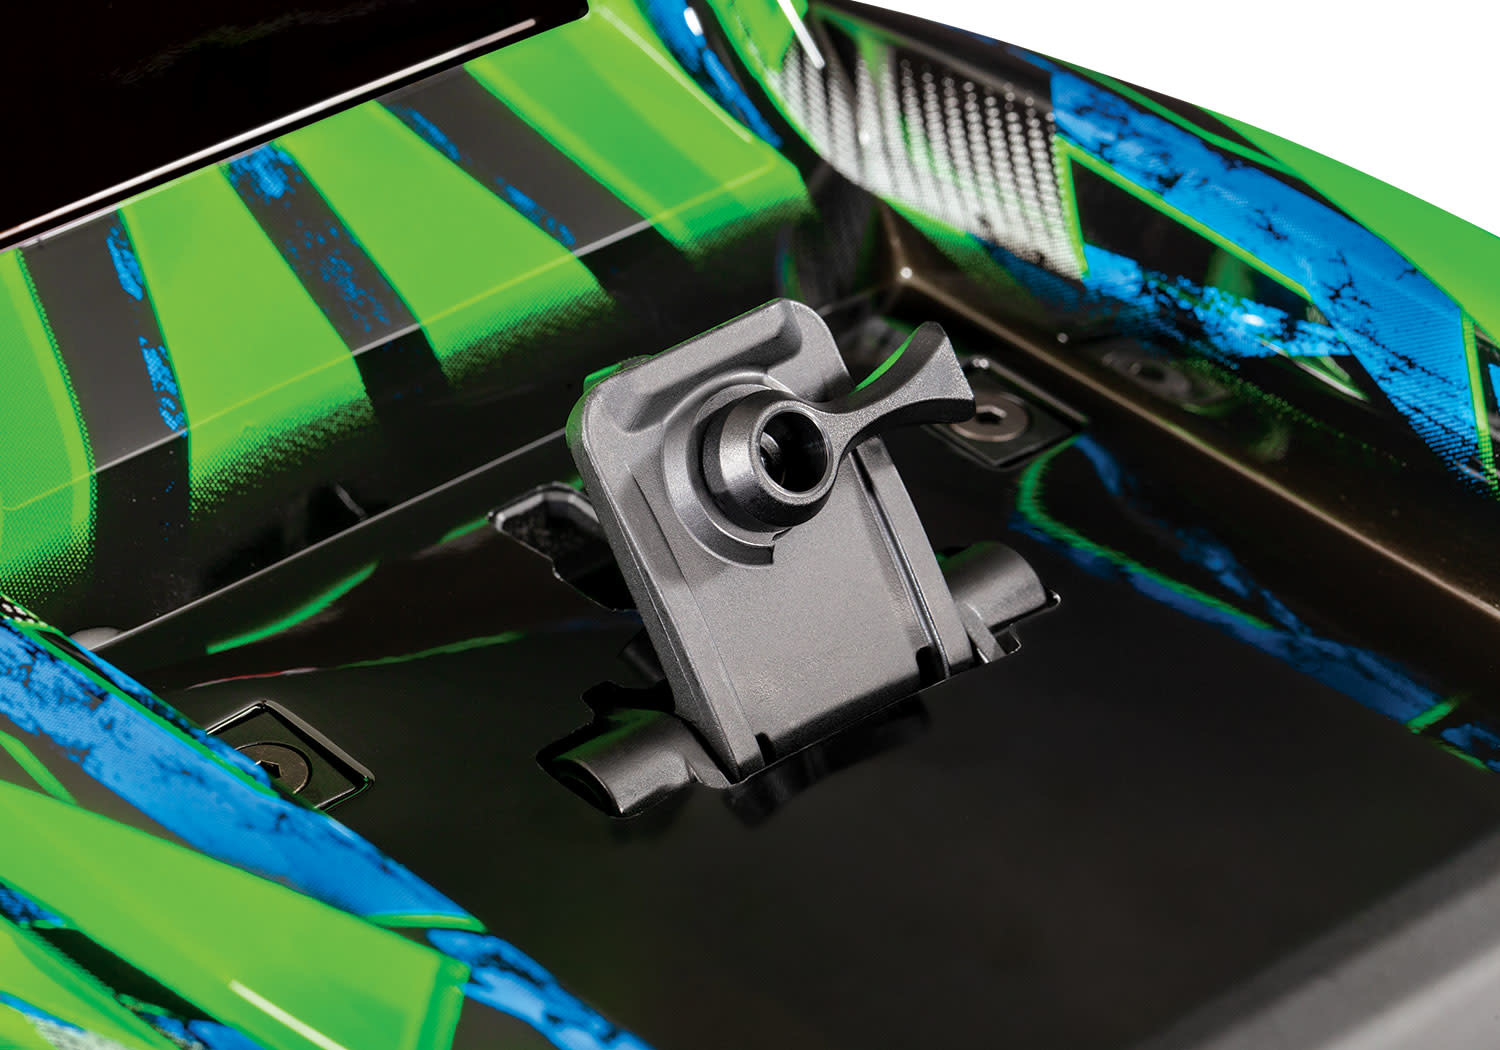 Traxxas Hoss 1/10 Scale 4WD Brushless Electric Monster Truck, VXL-3S, TQi - Green TRX90076-4G-10